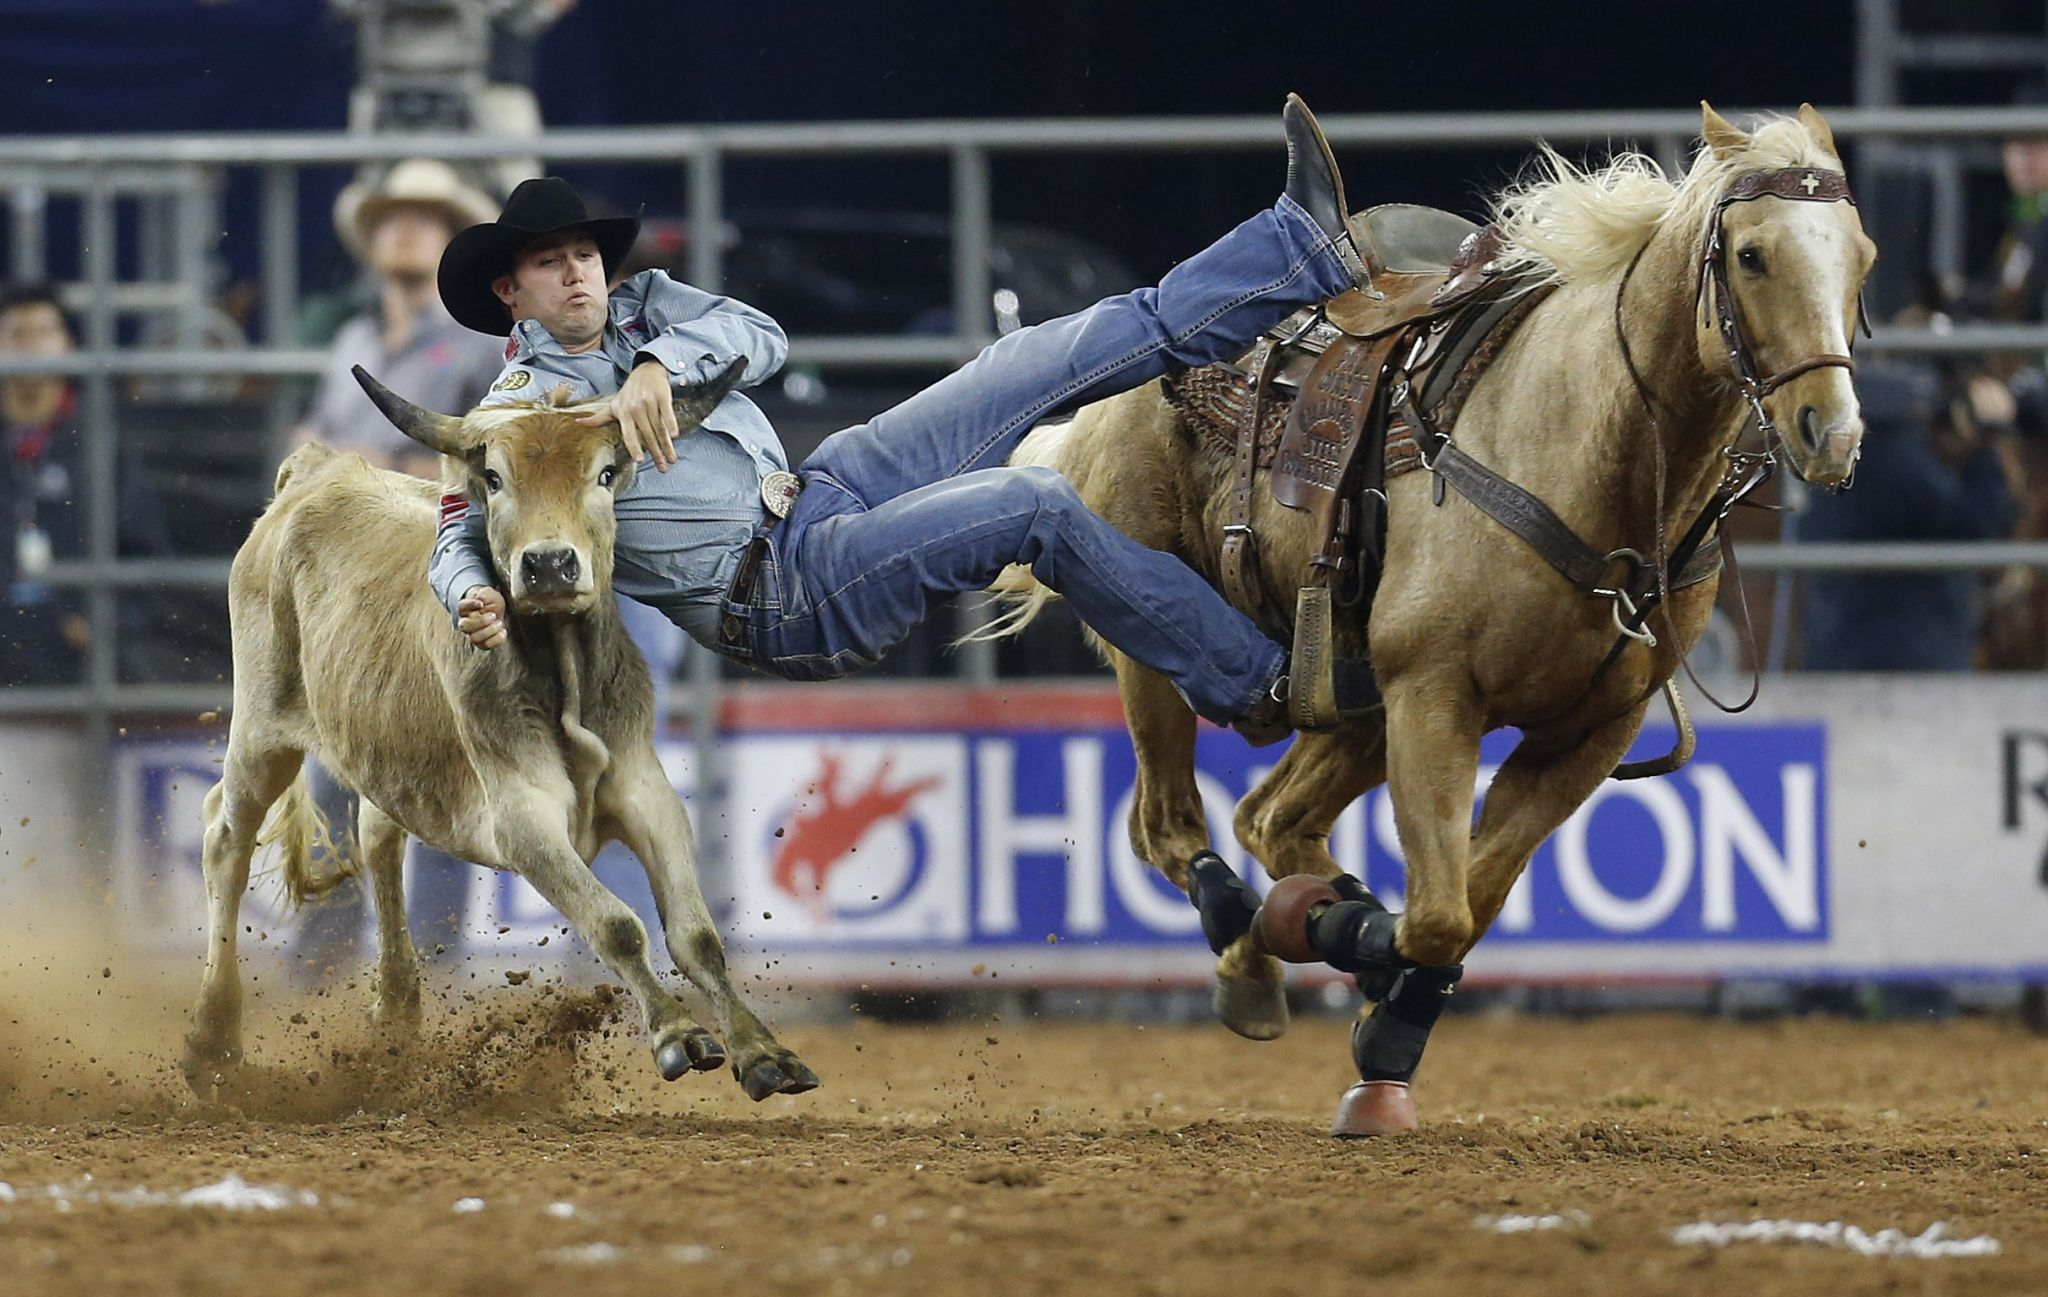 Steer Wrestler Tyler Waguespack Clinches Spot In